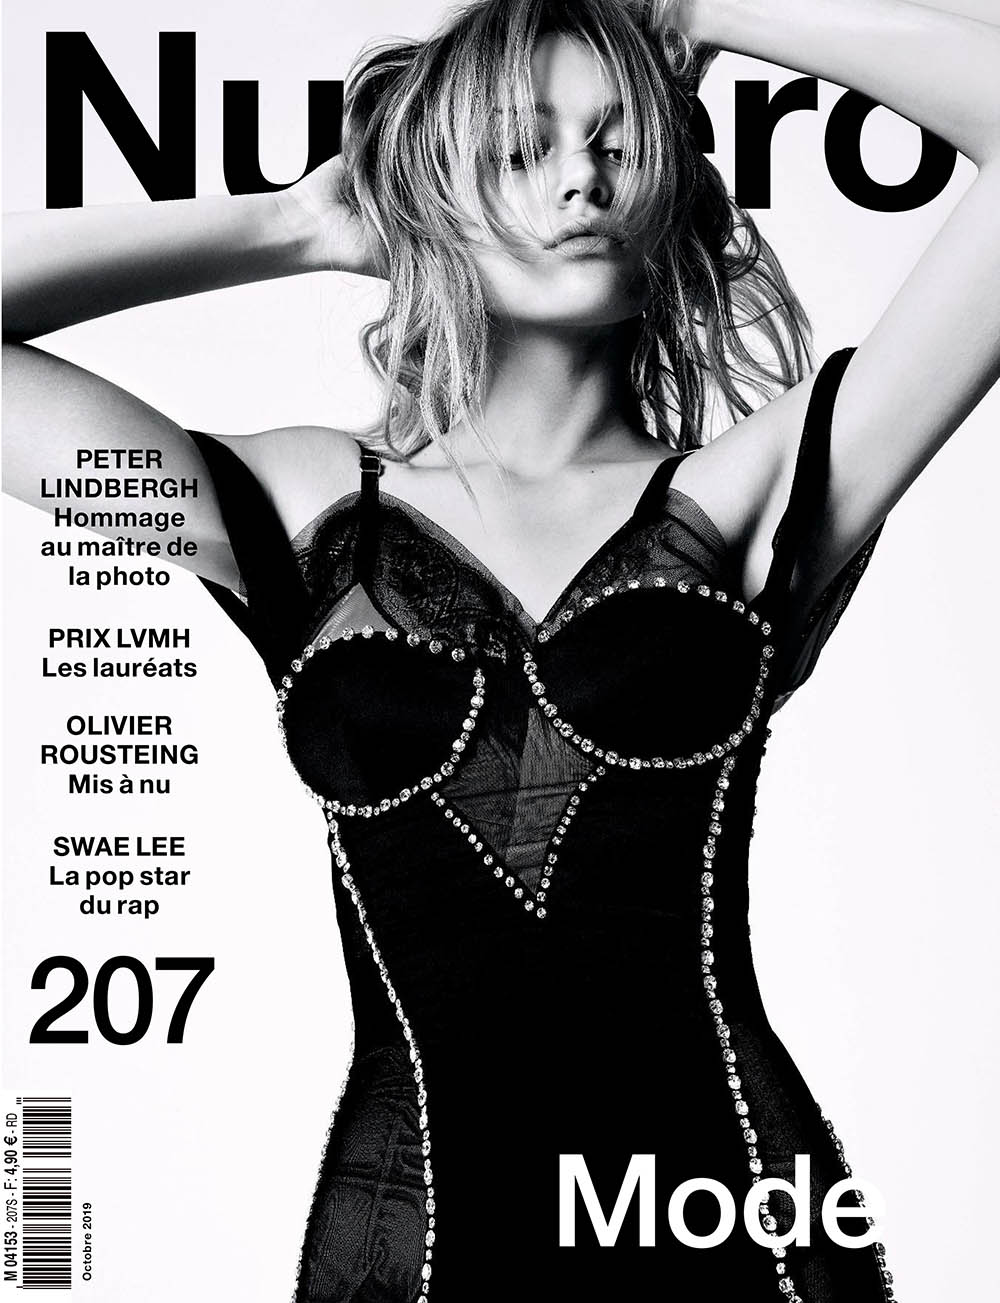 Simona Kust covers Numéro October 2019 by Jean-Baptiste Mondino